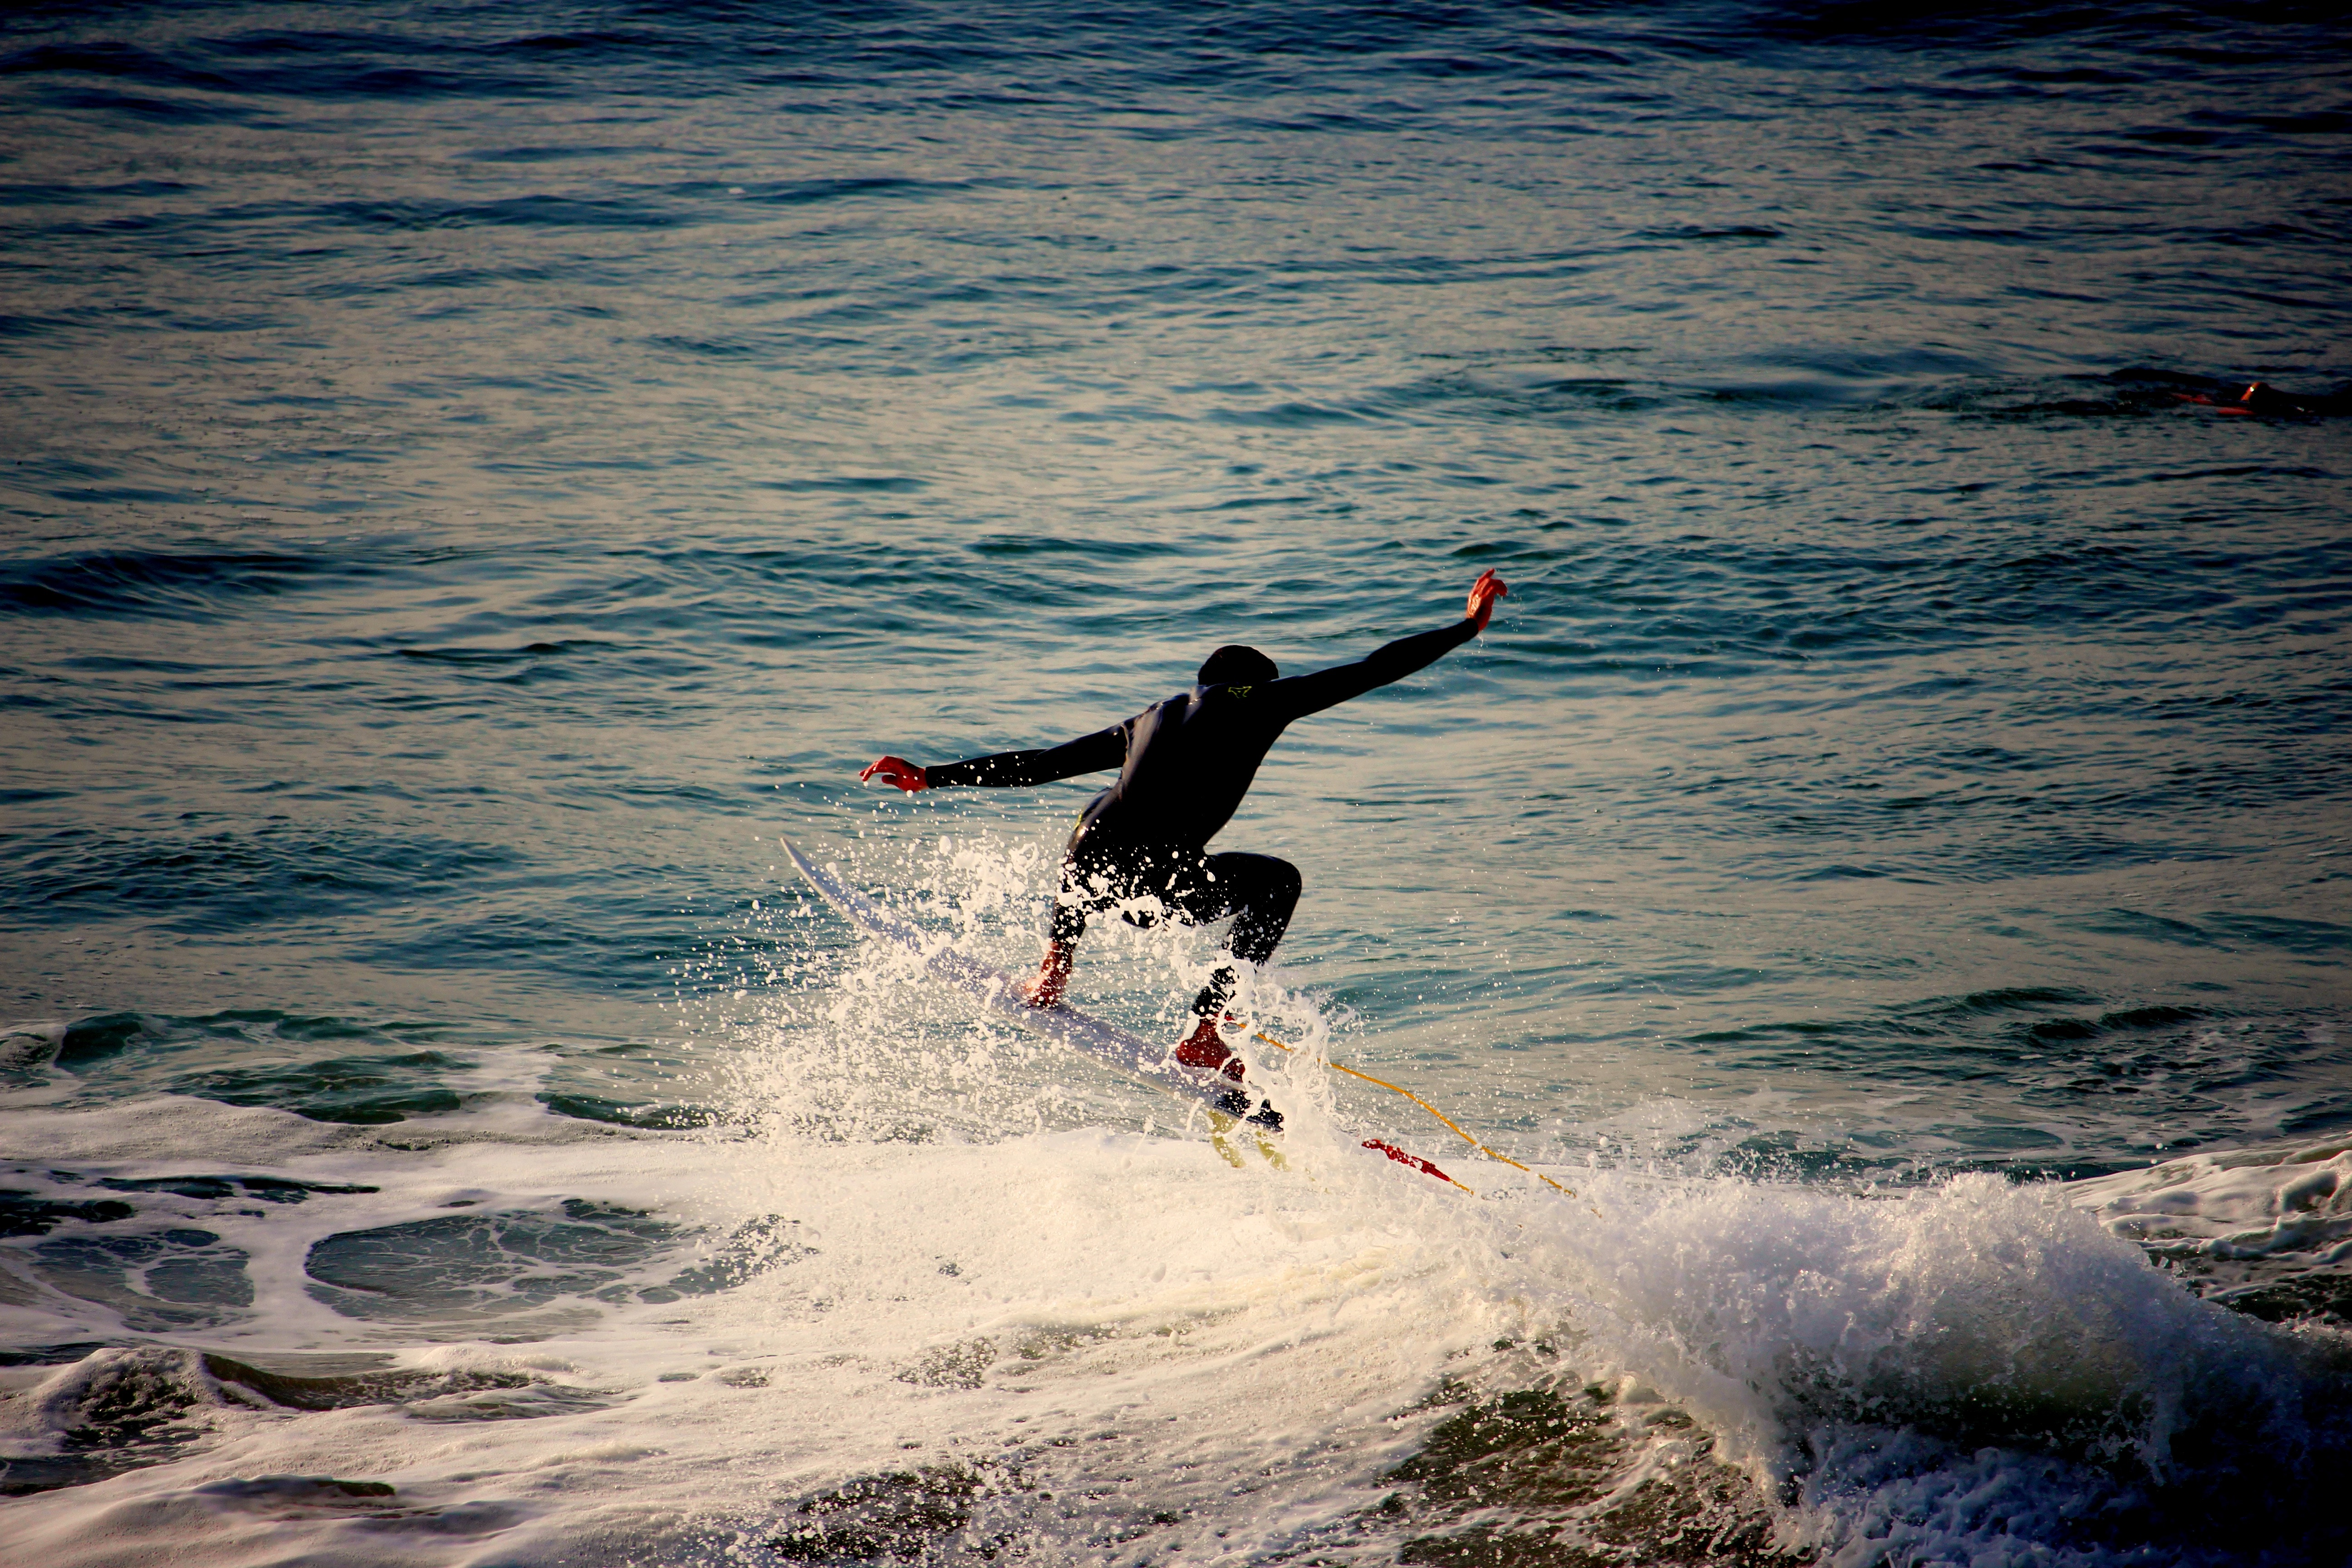 62834 download wallpaper Sports, Surfer, Serfing, Sea, Foam, Waves screensavers and pictures for free